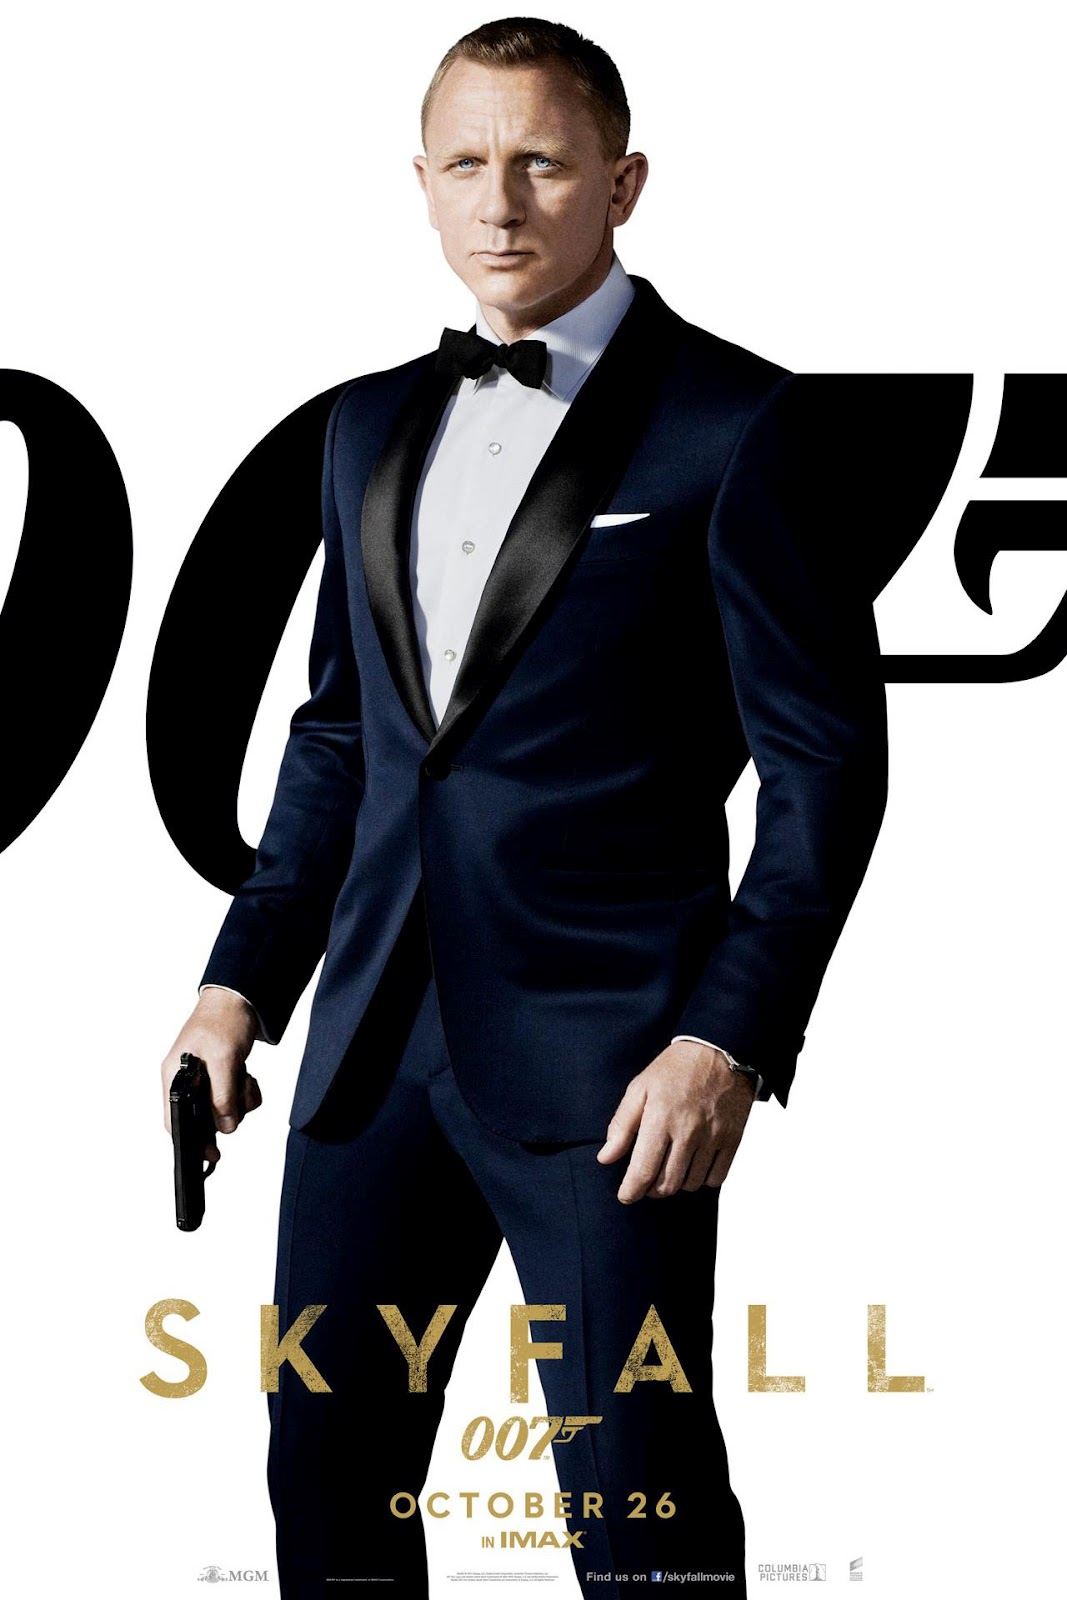 http://4.bp.blogspot.com/-zFnnss8WI28/UJTK3H4zzvI/AAAAAAAAAS8/K1spKVvJlrw/s1600/daniel-craig-james-bond-007-skyfall-tom-ford-tuxedo-dinner-suit-midnight-blue-black-shawl-satin-silk-lapel-skinny-batwing-bow-tie.jpg